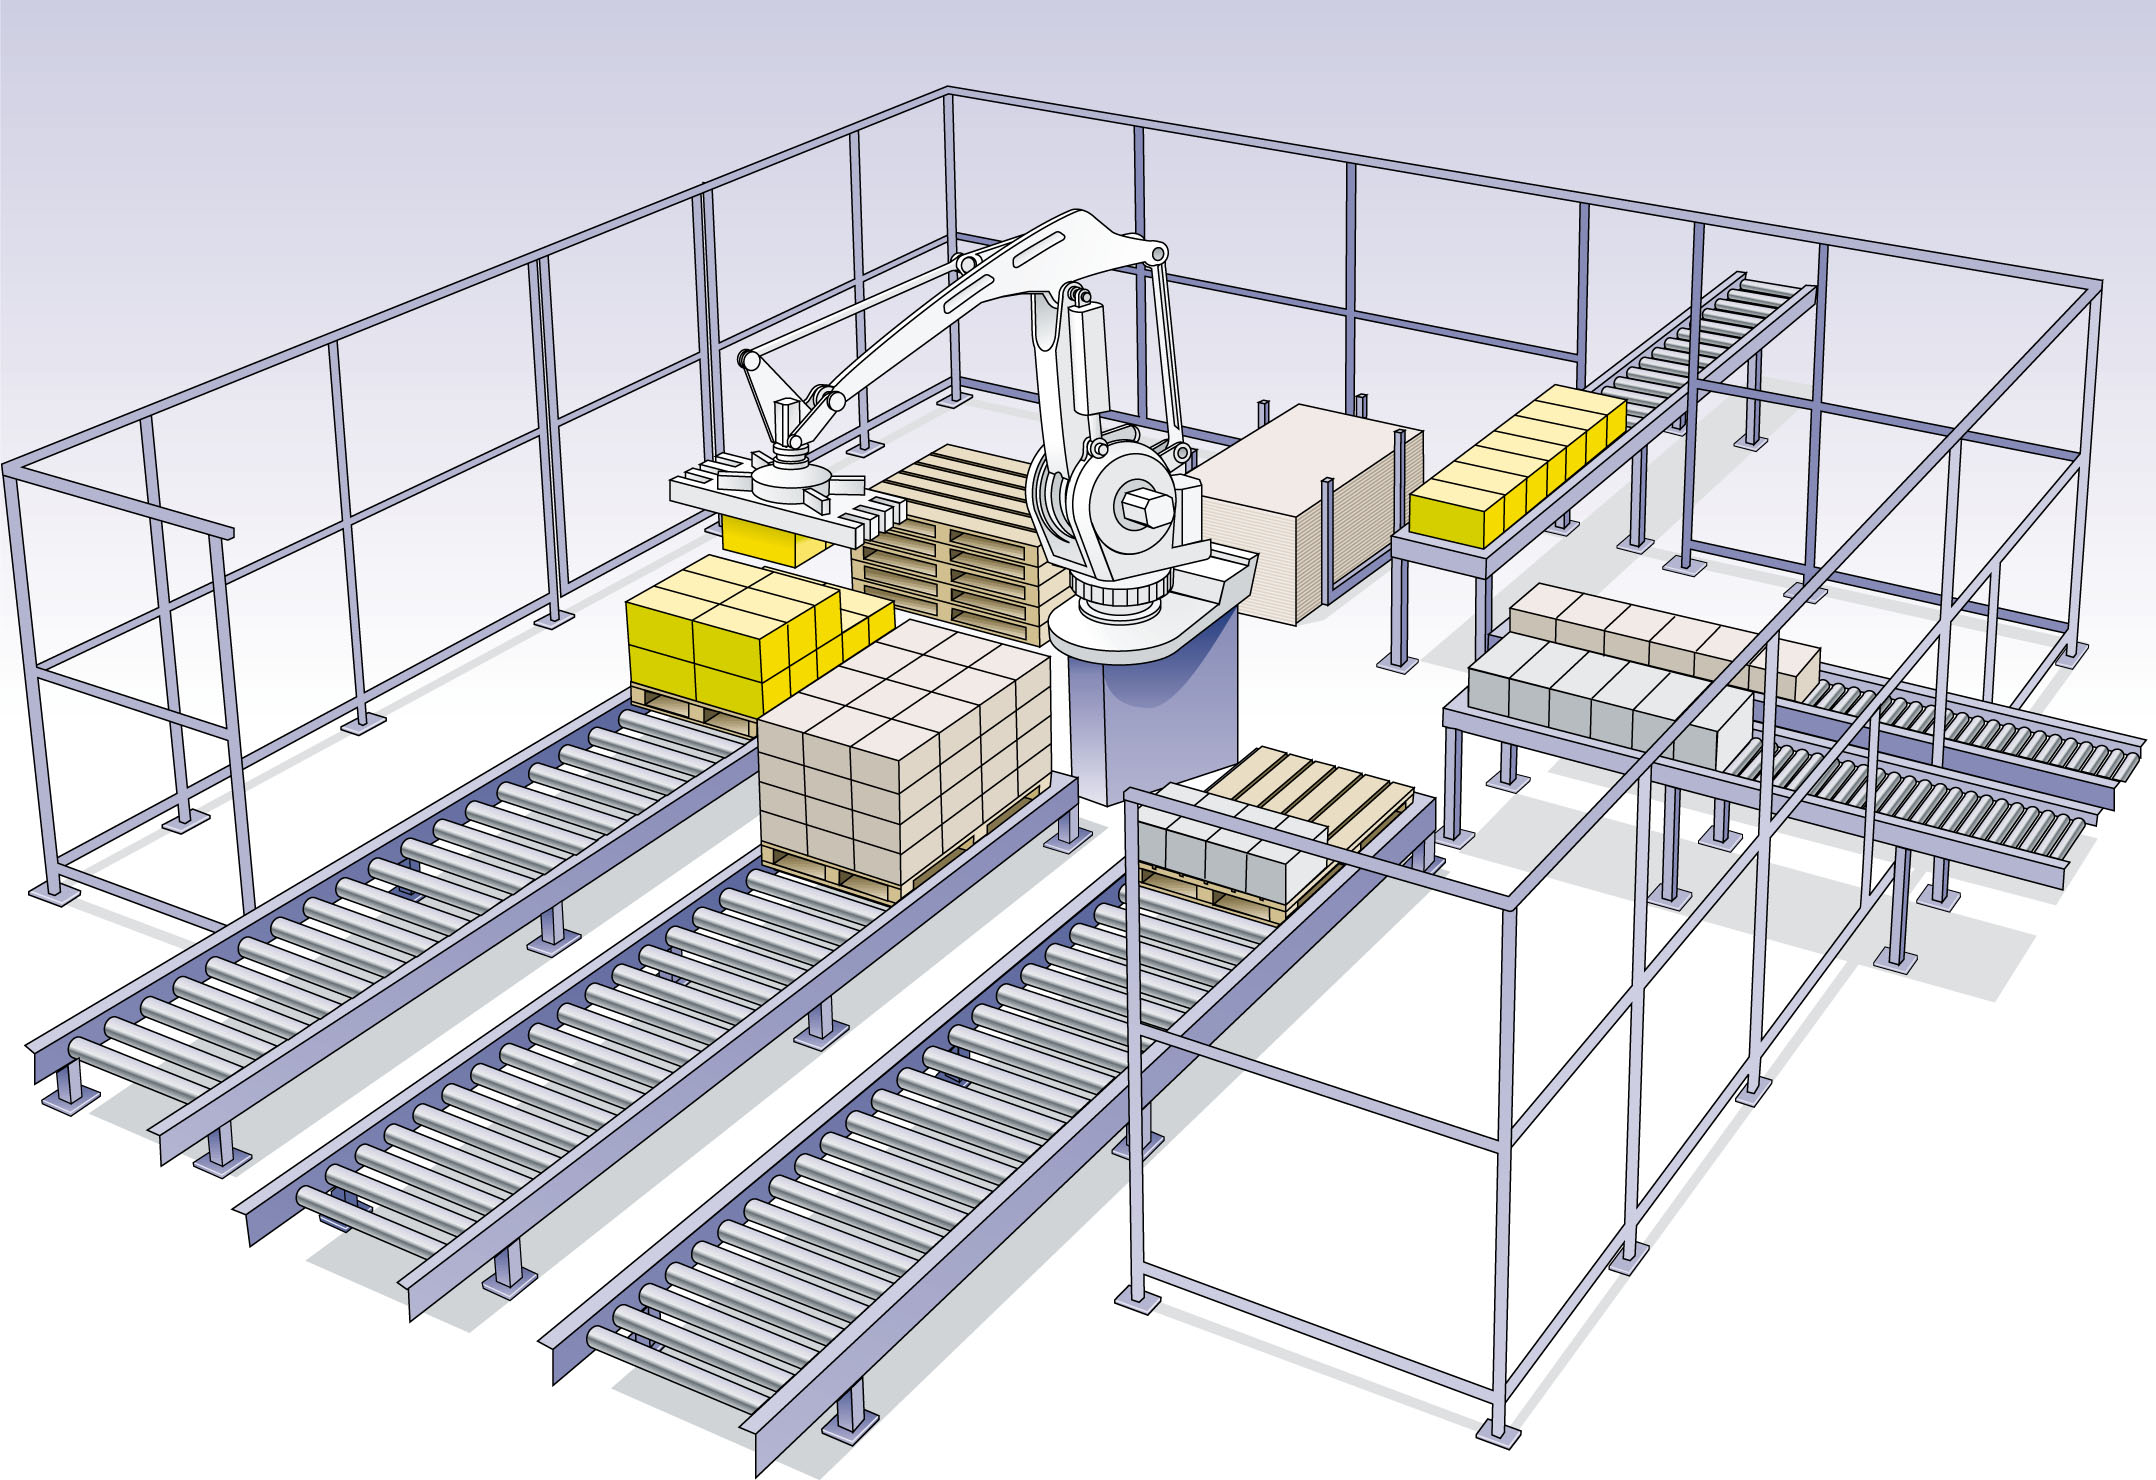 Industrial machines and materials